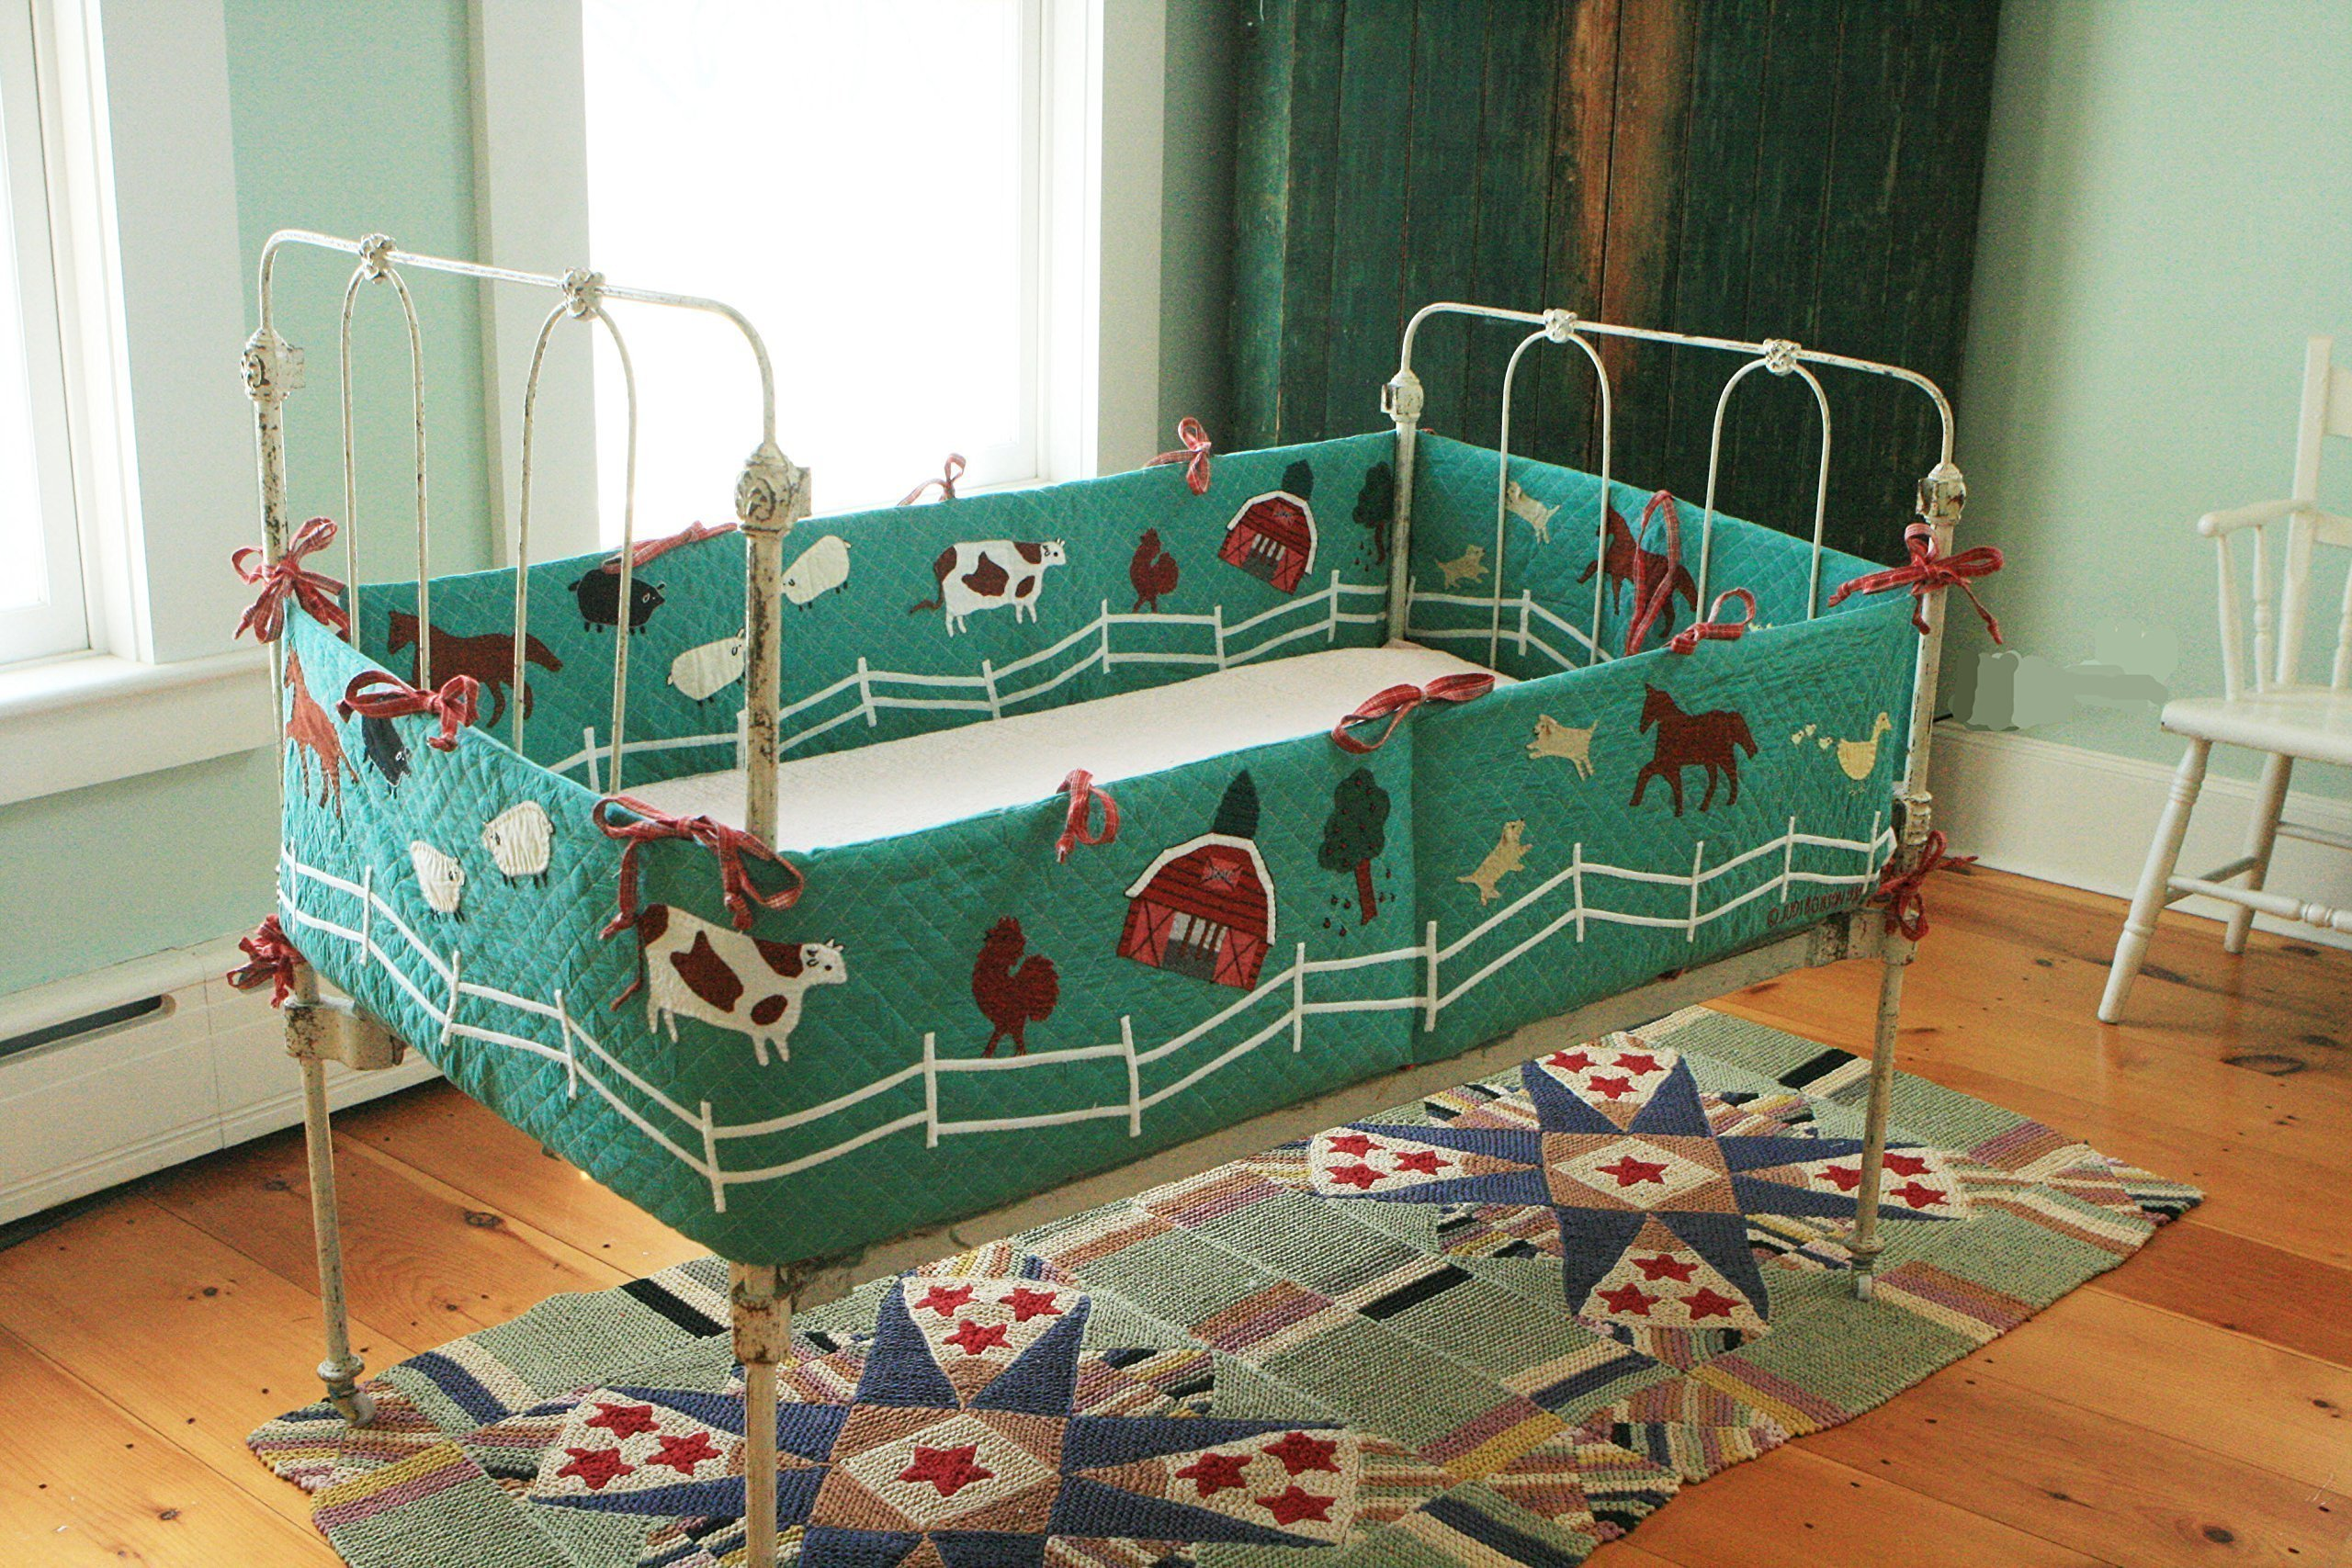 Designed by Judi Boisson.''Mc.Donald's Good Farm'', Where the Animals go Home with the Kids. Reversible. Boy or Girl. Cotton